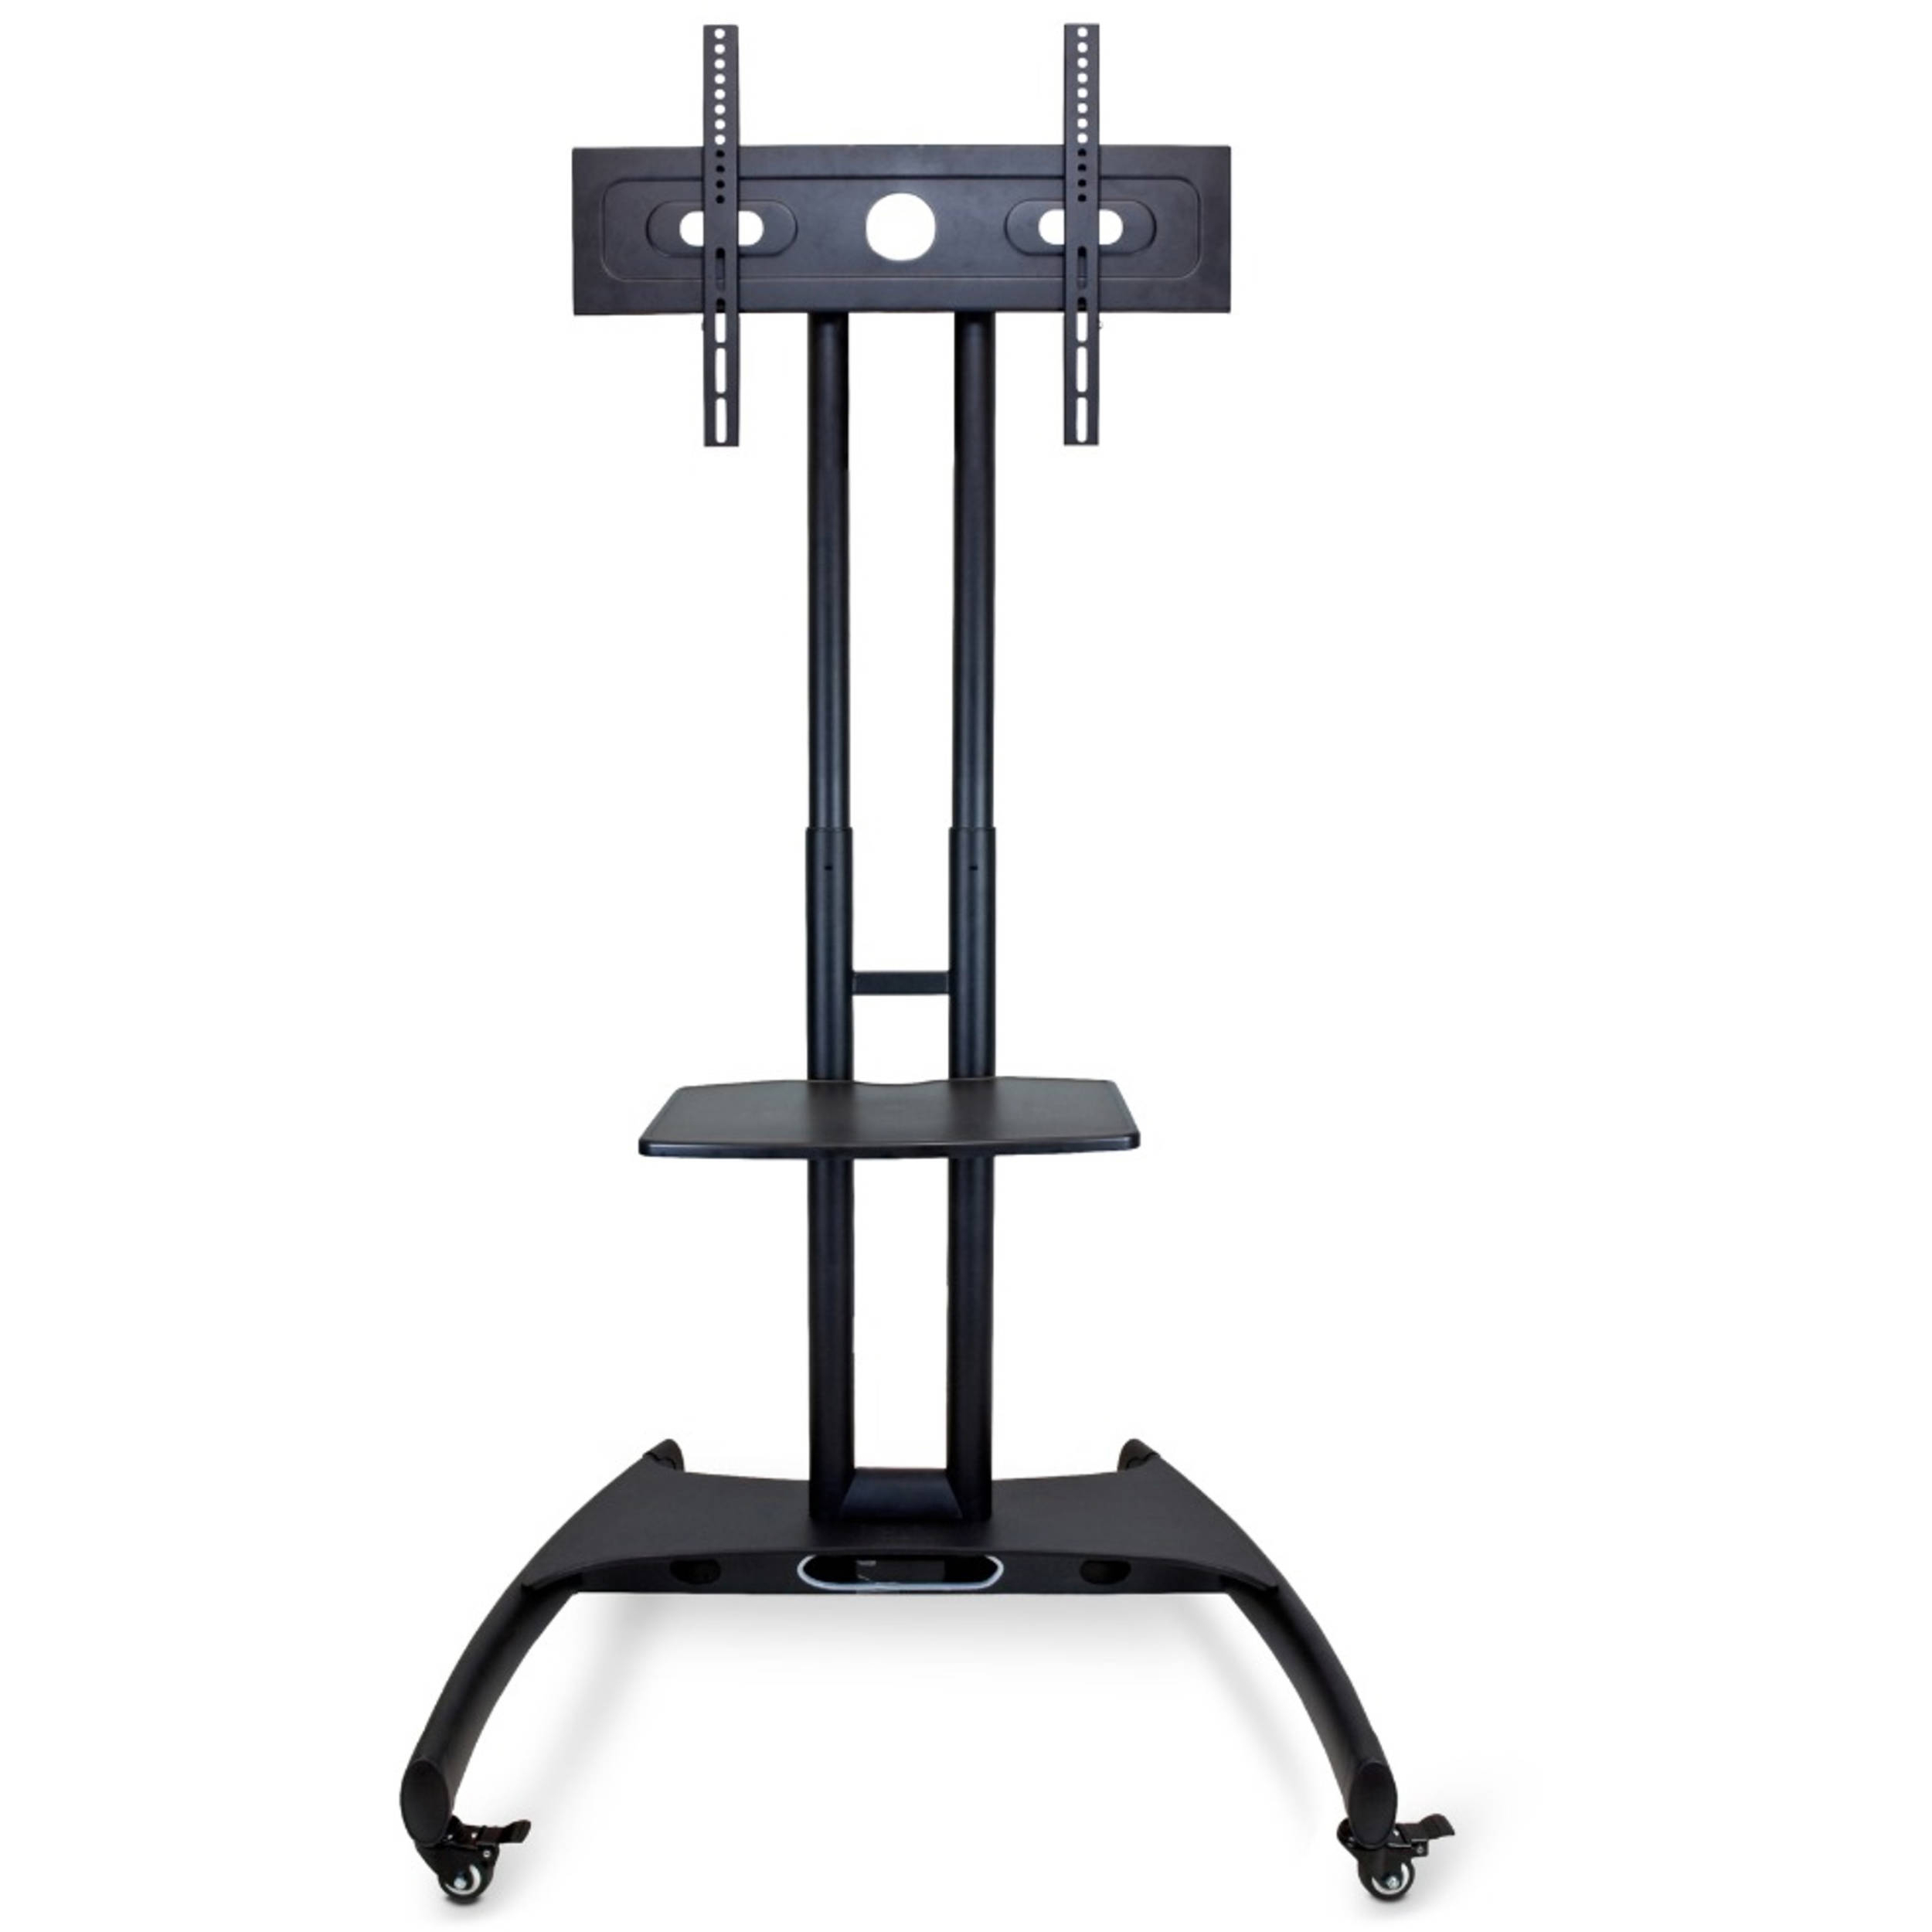 Luxor Fp2500 Adjustable Height Lcd Tv Stand Fp2500 B&h Photo Throughout Swivel Floor Tv Stands Height Adjustable (View 16 of 20)